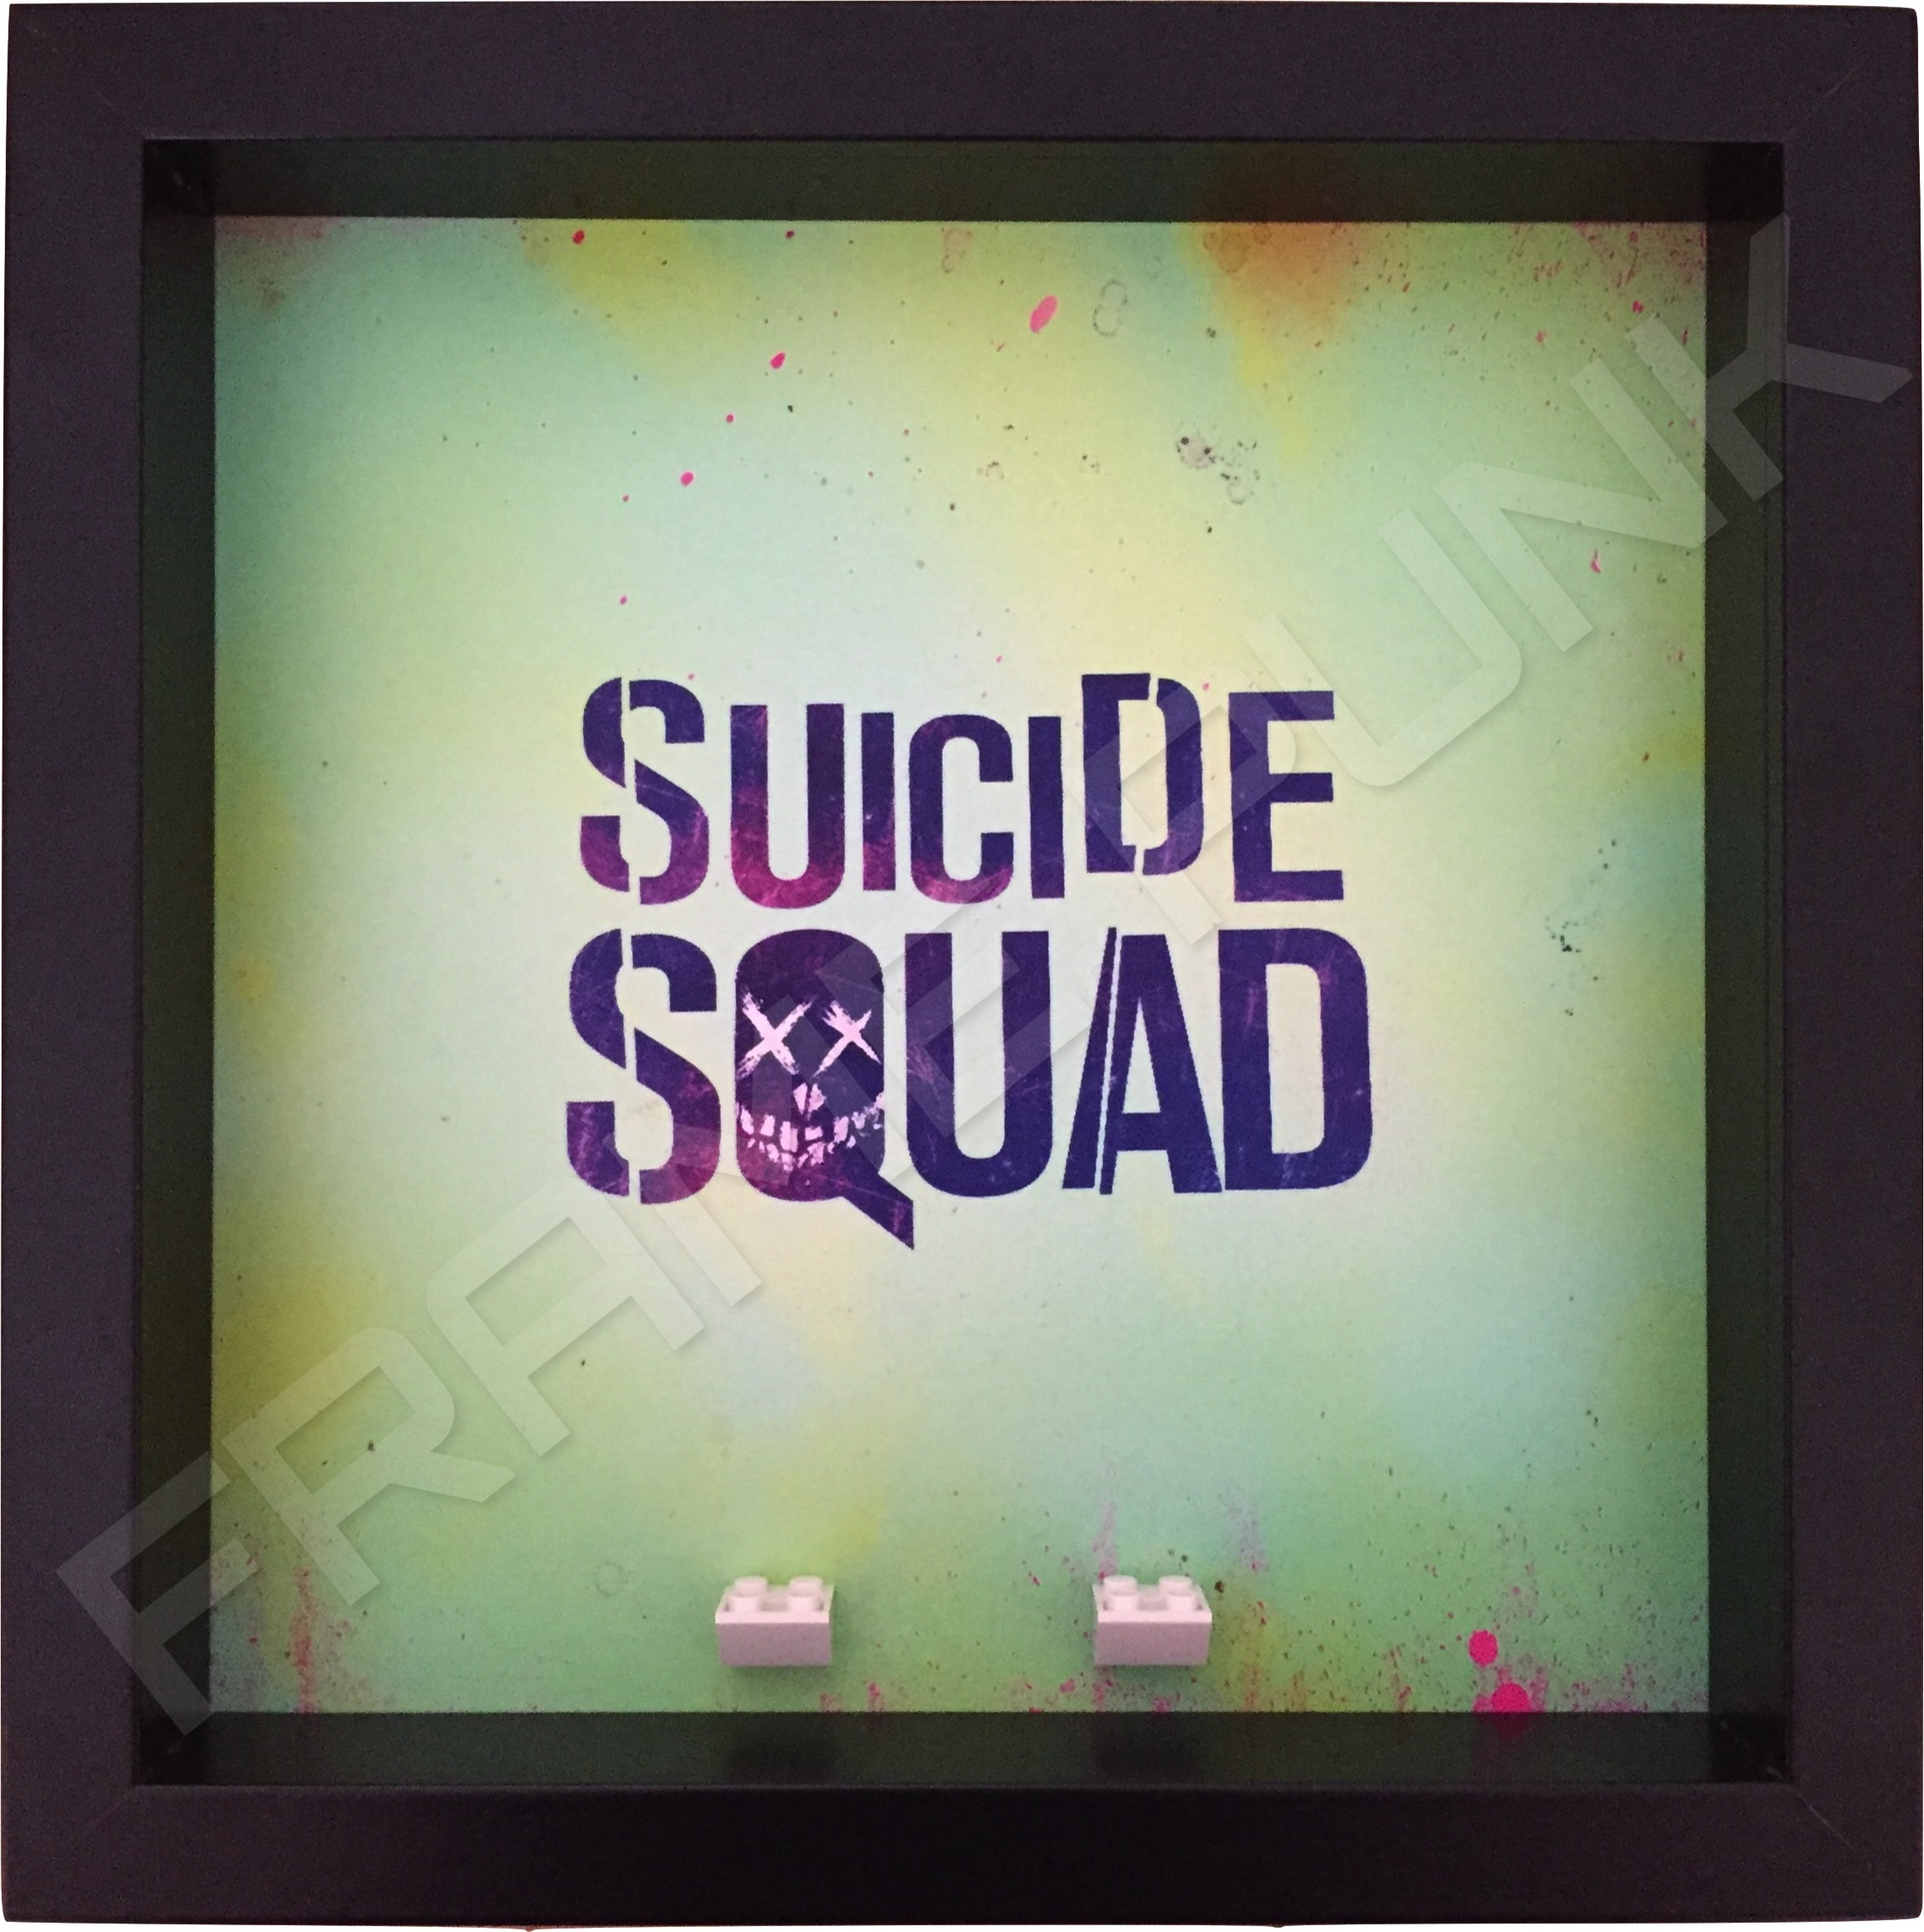 Suicide Squad Black Frame Lego minifigures display